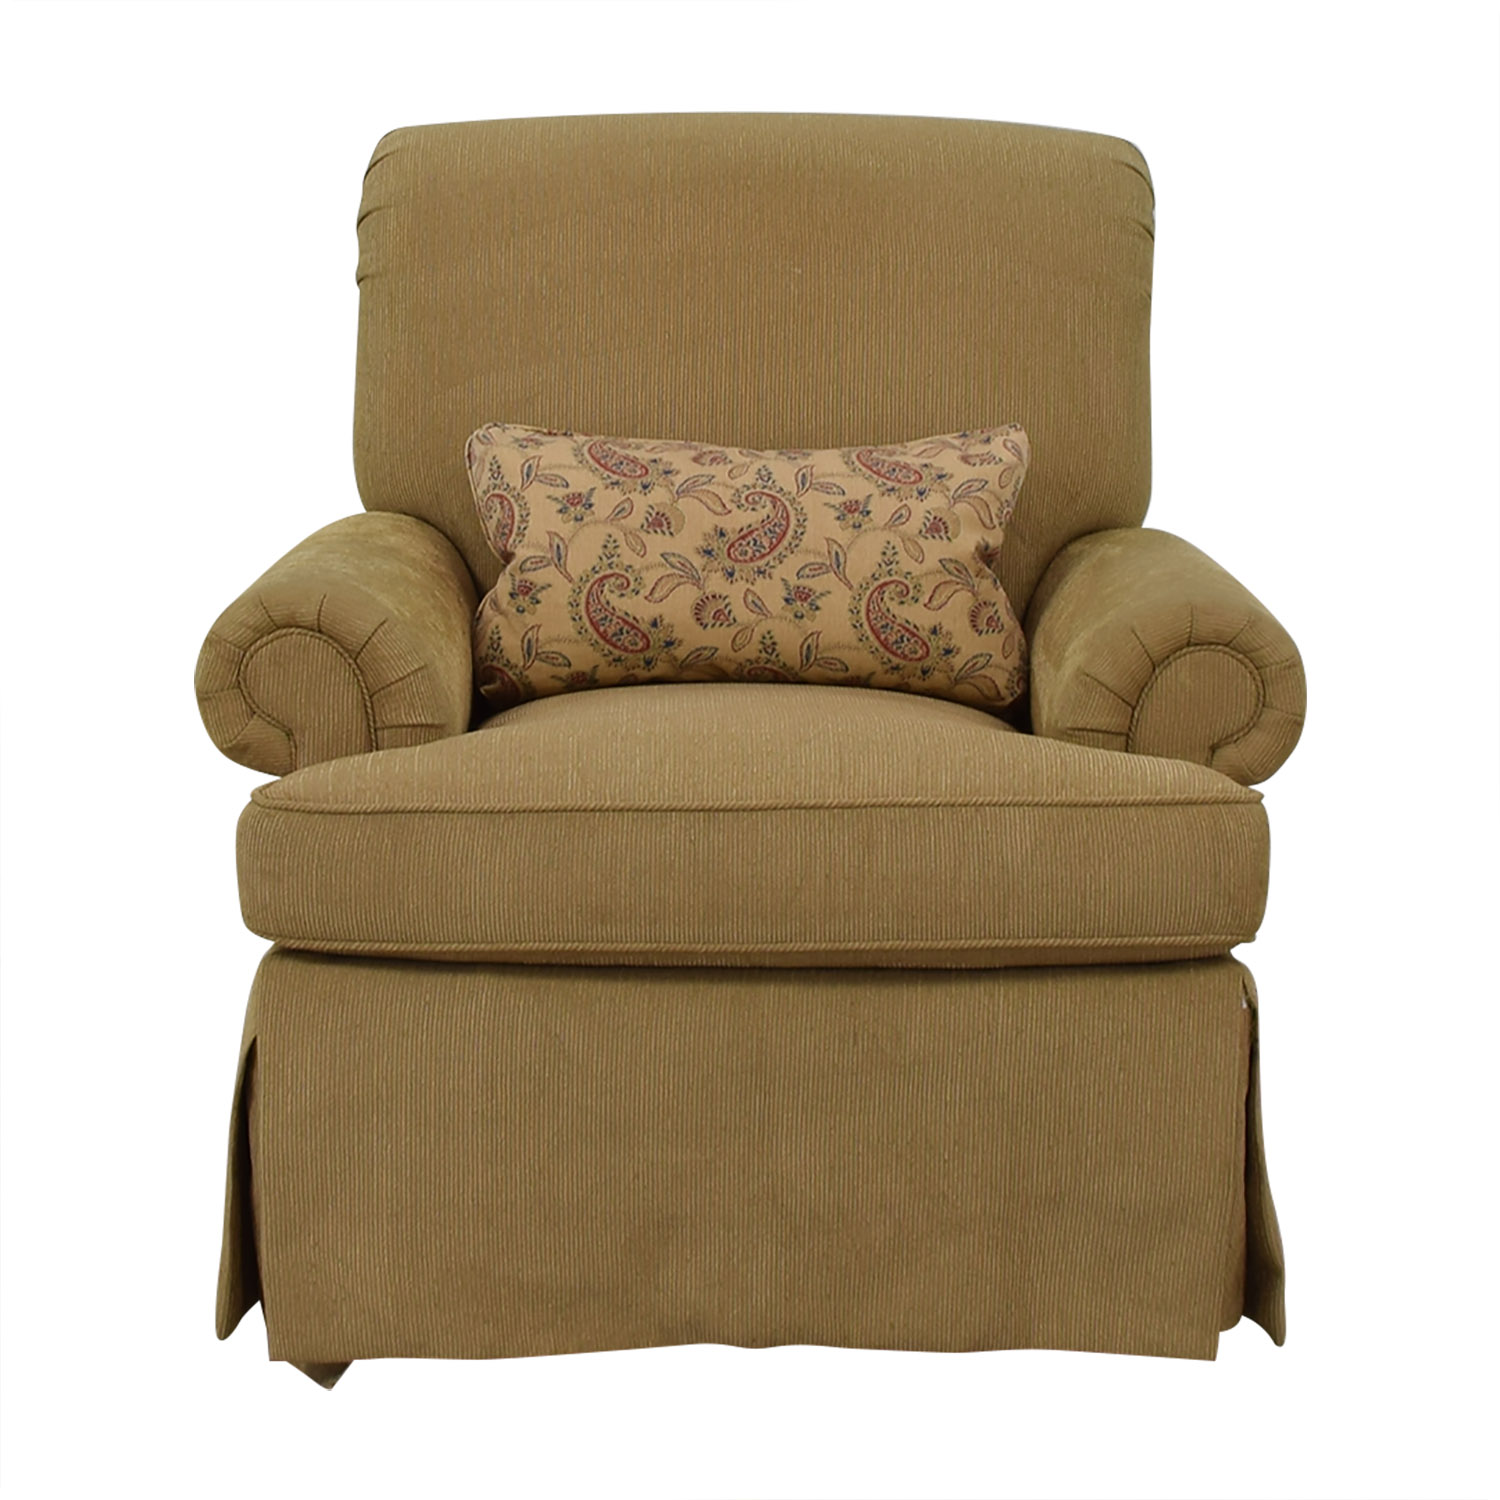 Calico Calico Corners Diane Accent Chair